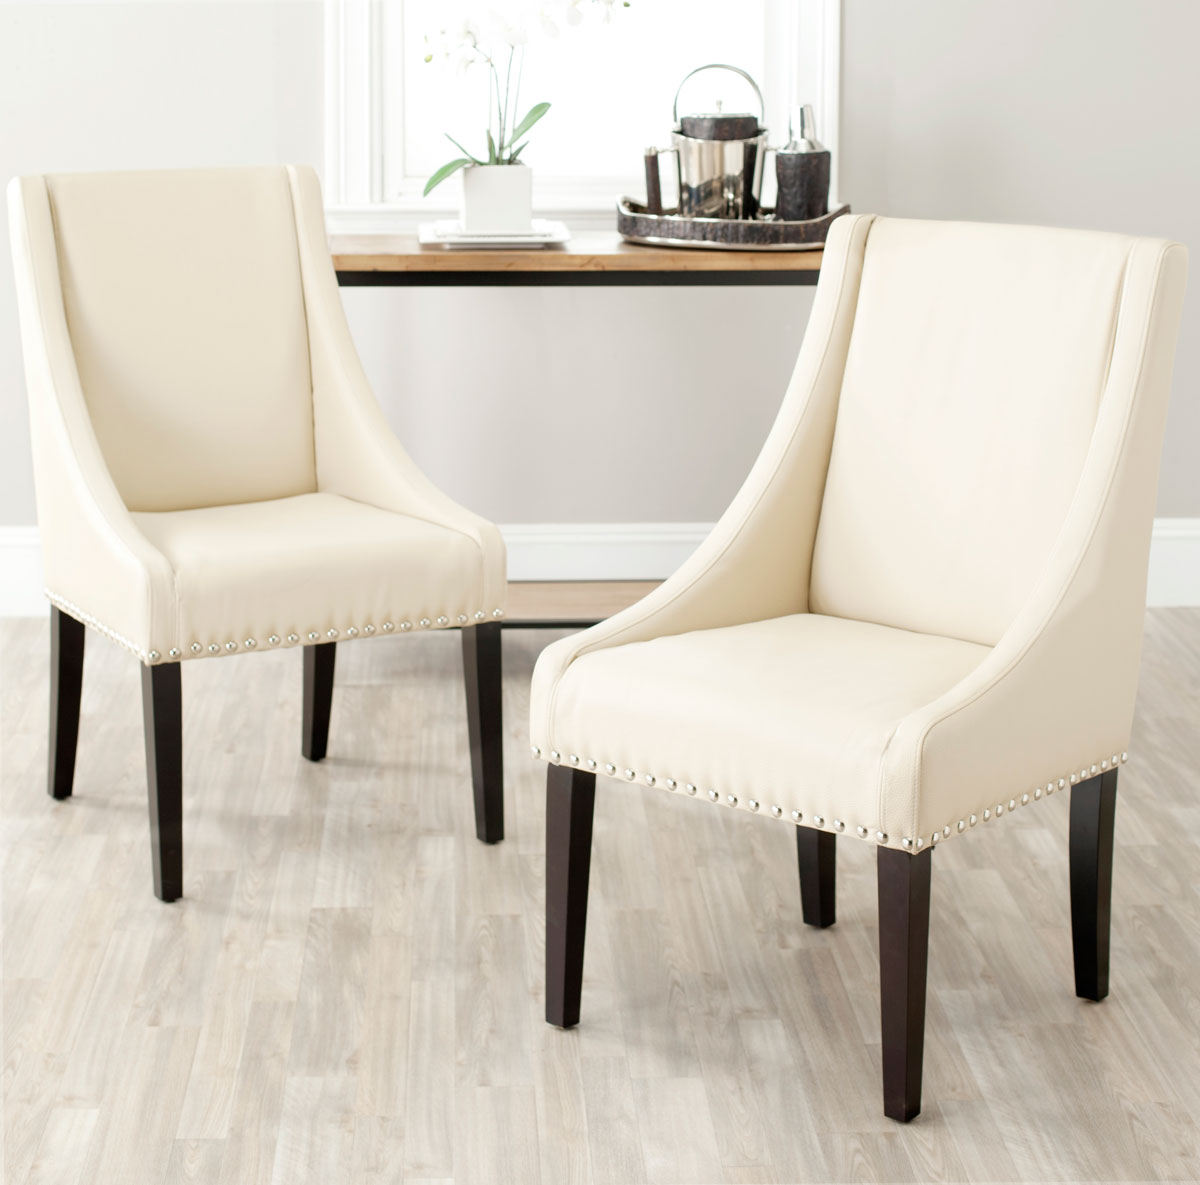 Mcr4702b Set2 Dining Chairs Furniture By Safavieh